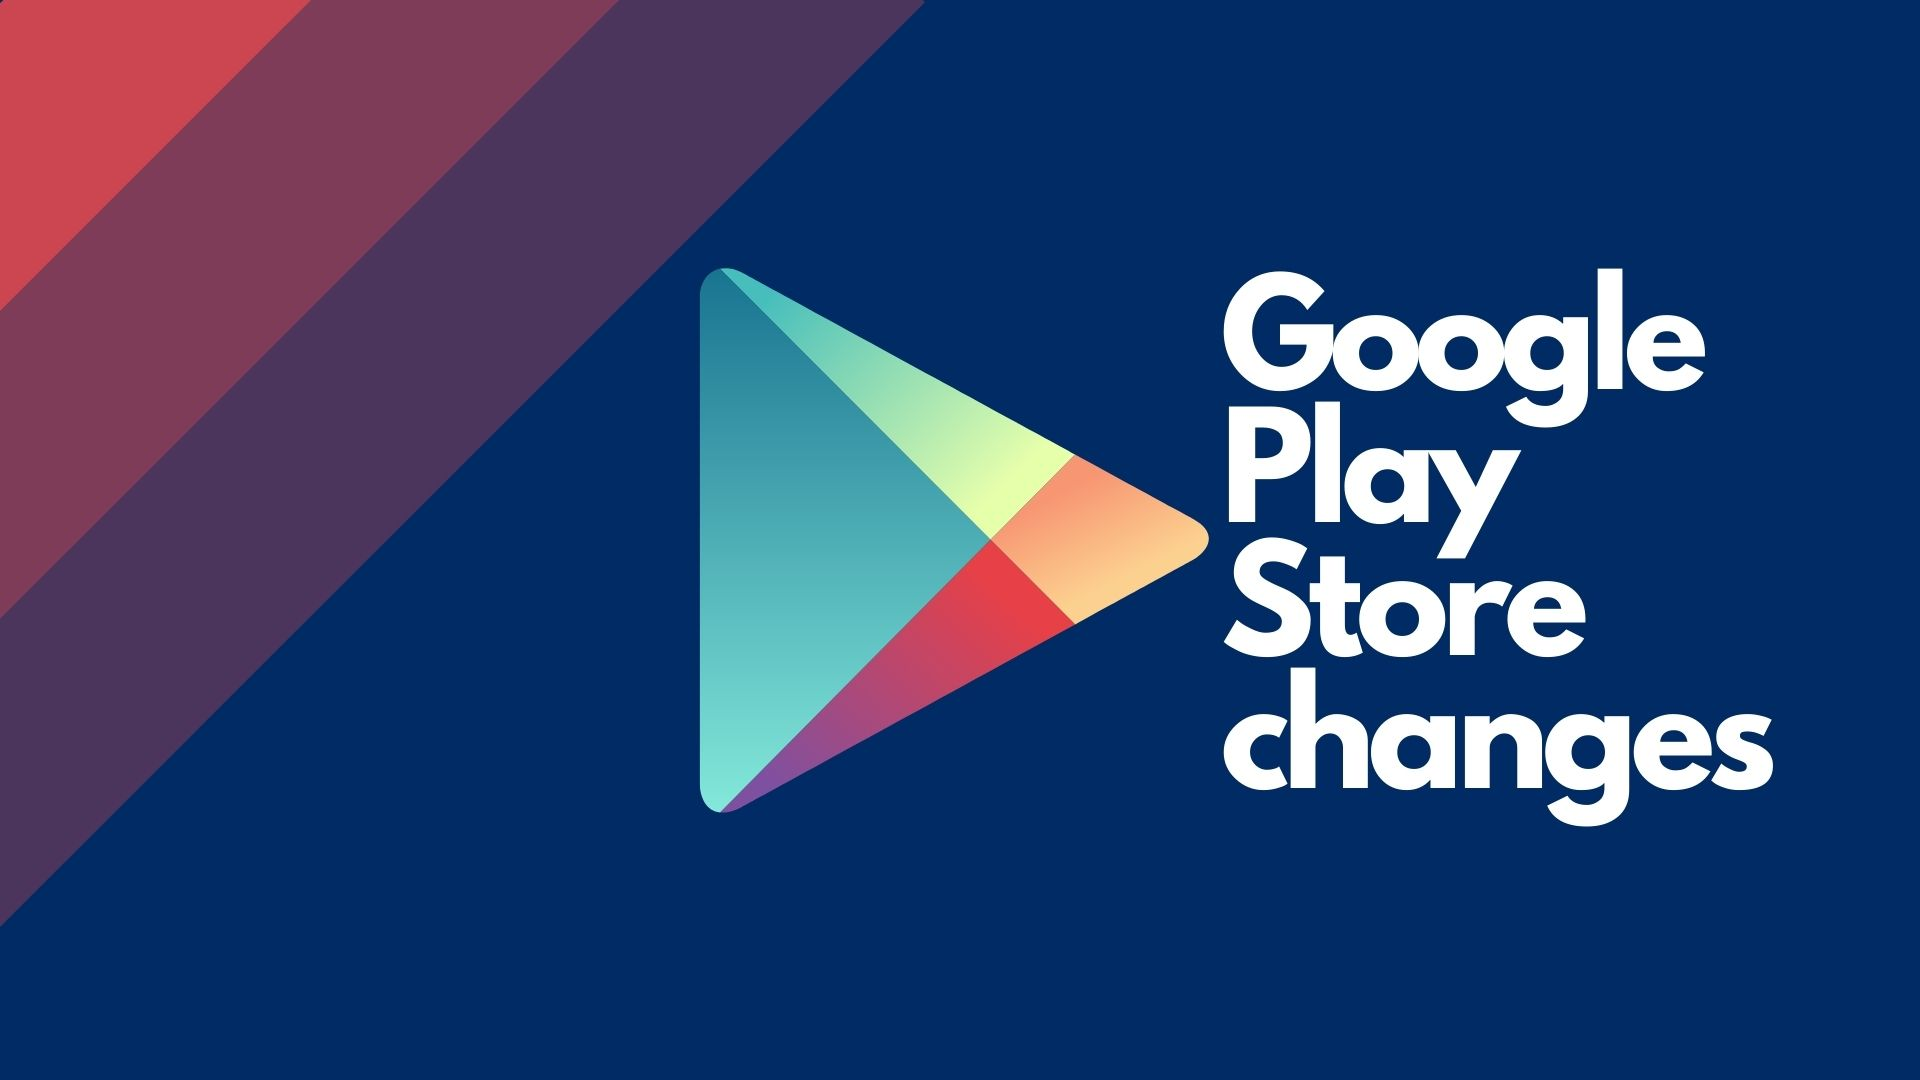 Google Play changes